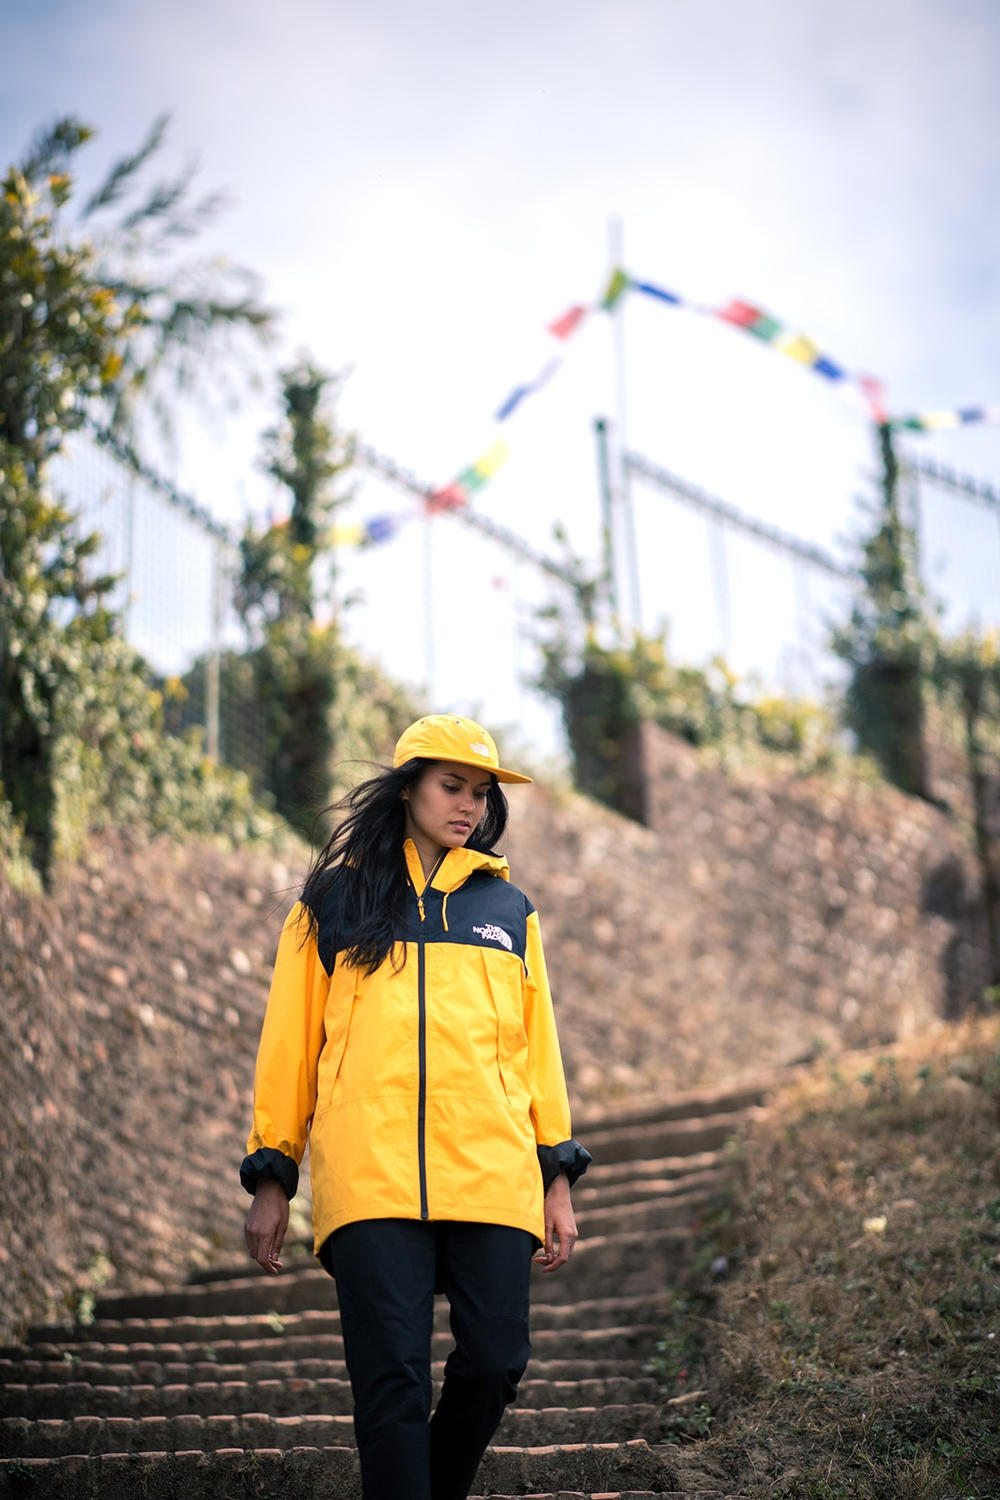 The North Face 為「Khumbu」系列打造 Lookbook